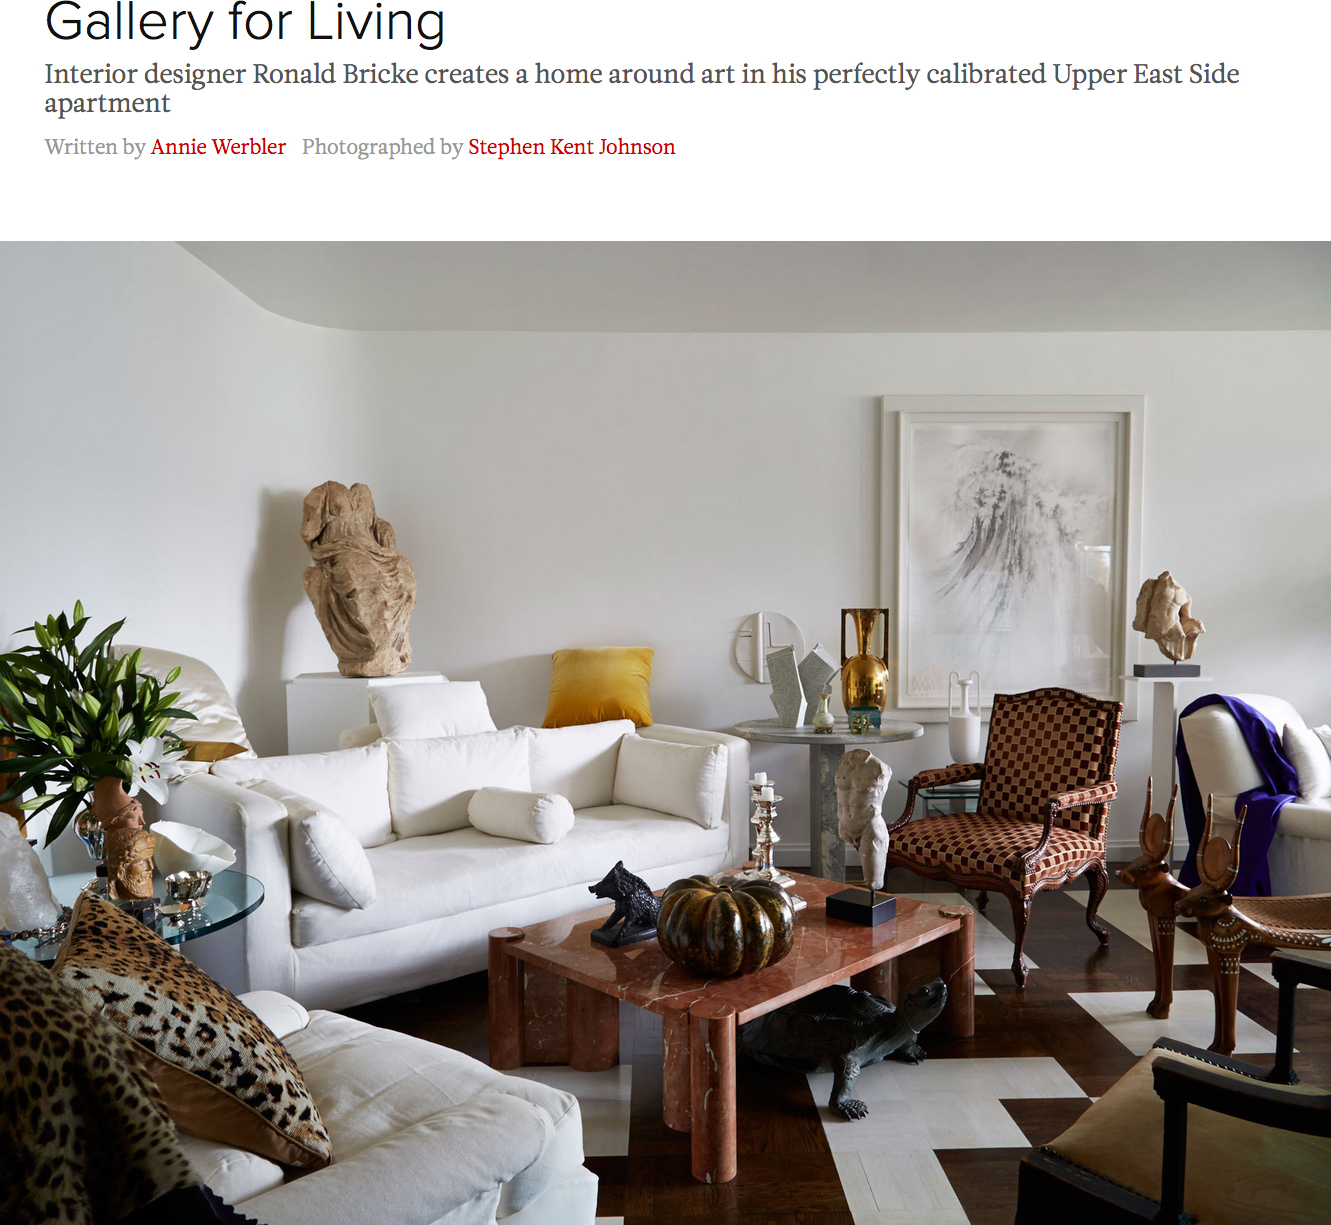 Gallery for Living